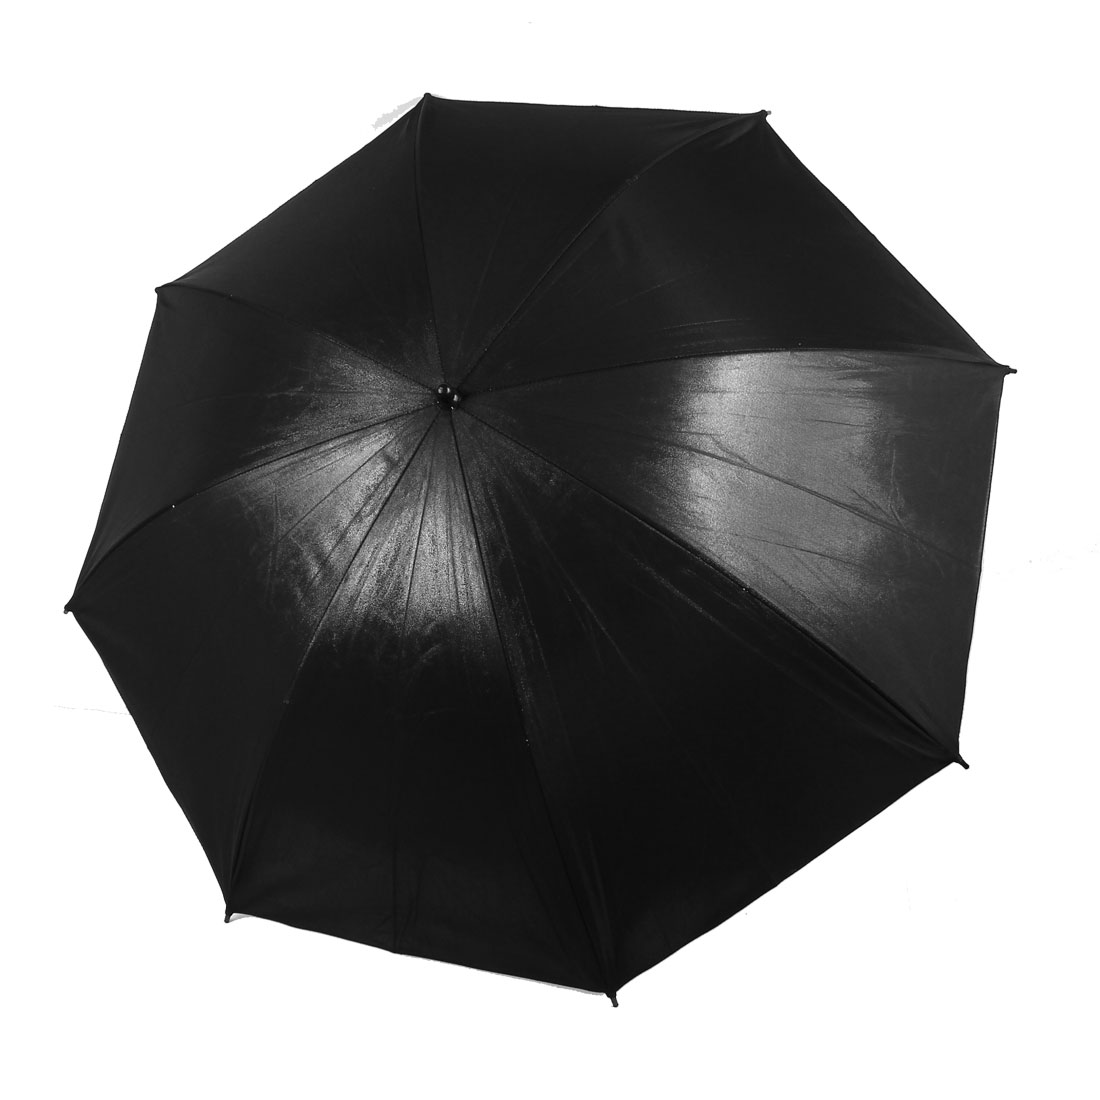 "42"" 106cm Photography Studio Flash Light Reflector Umbrella Black Silver Tone"